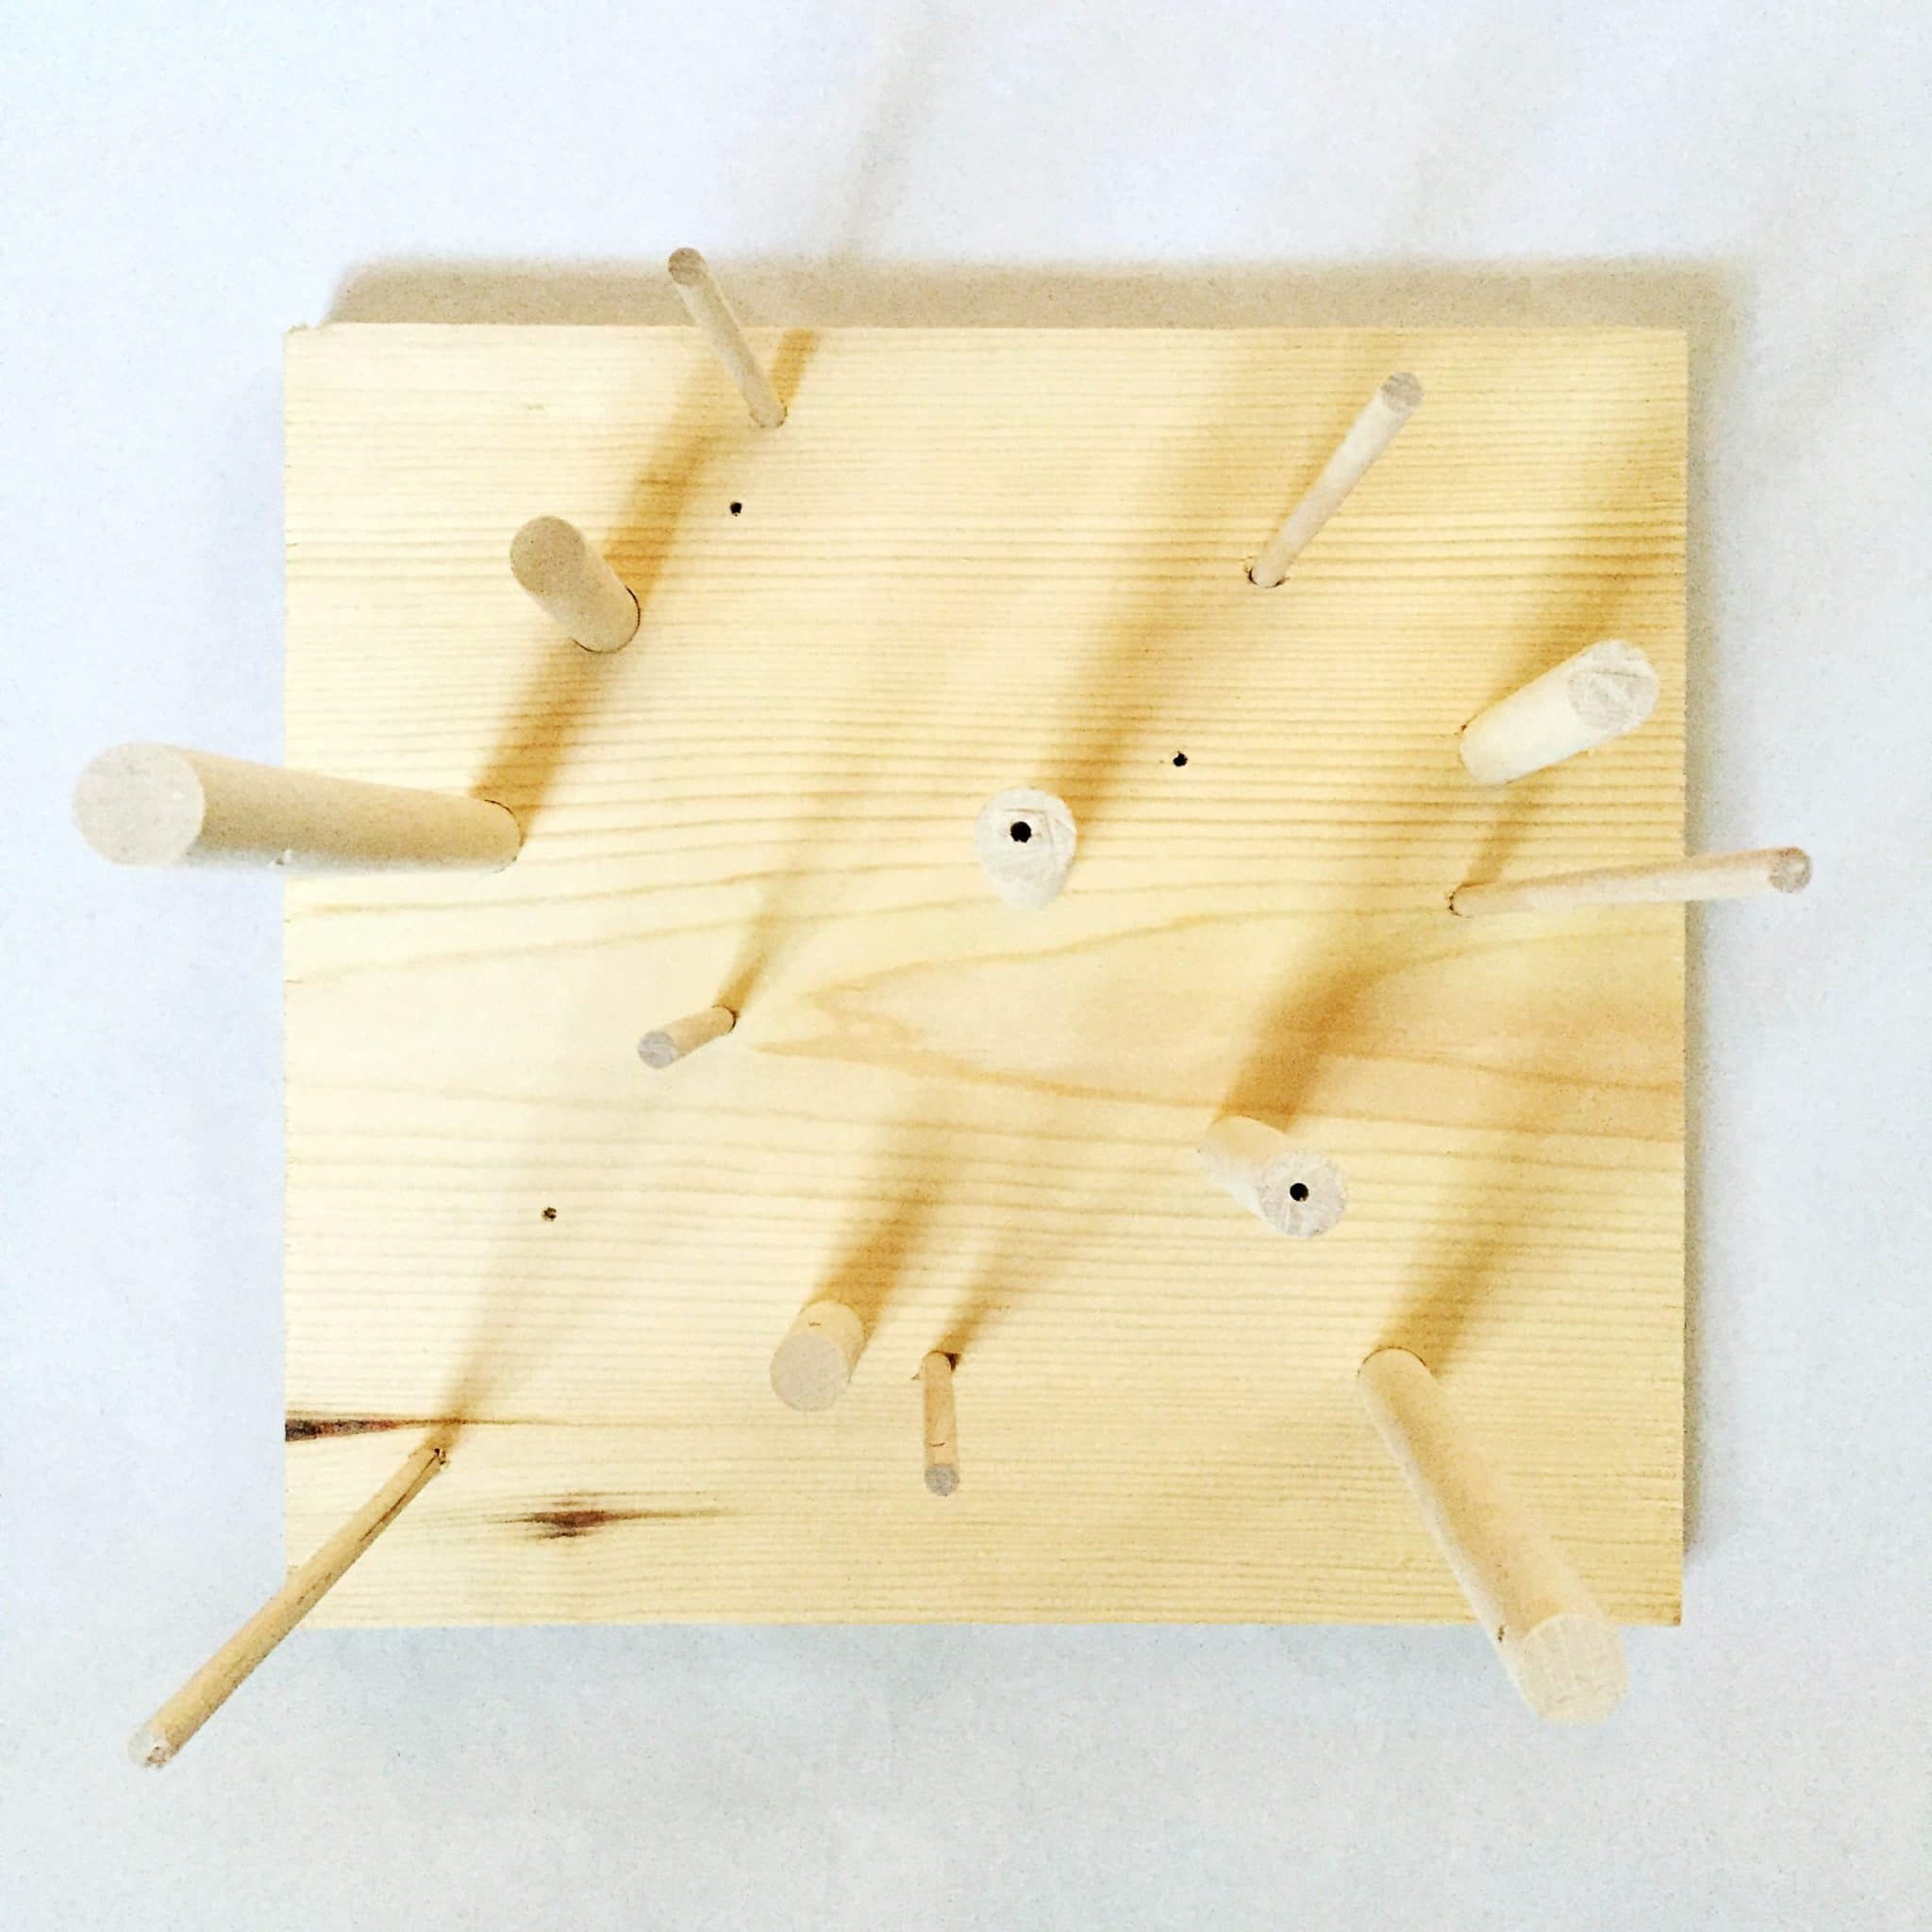 10-Minute DIY Thingamaboard: A simple versatile wooden toy for creative kids via barley and birch